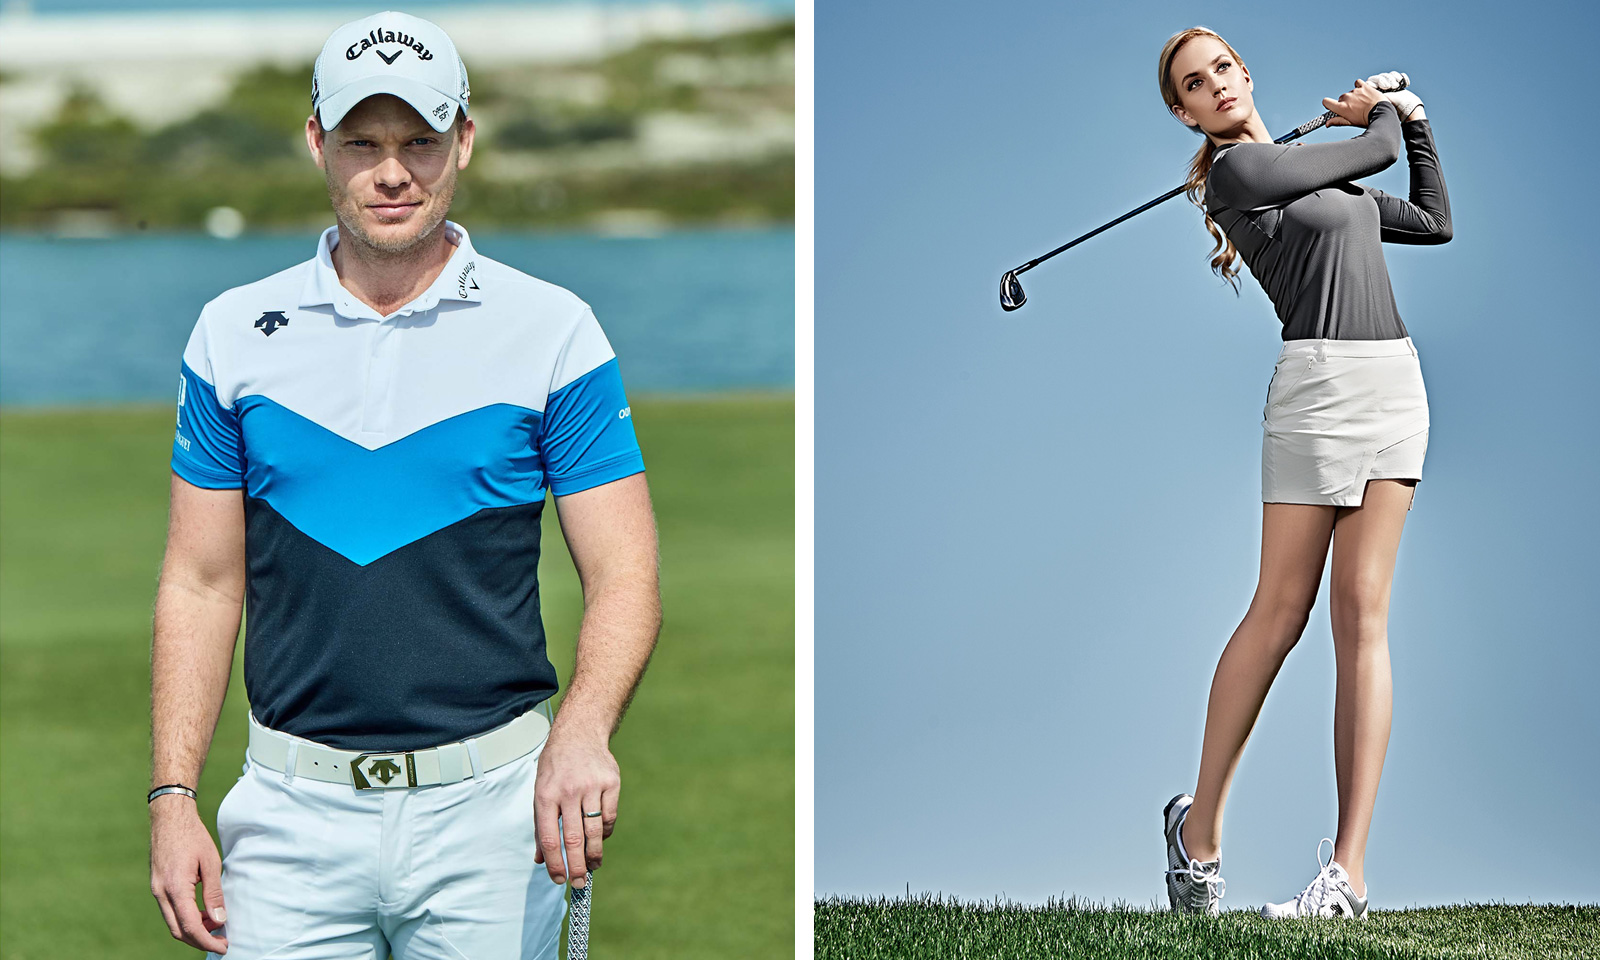 Danny Willett and Paige Spiranac